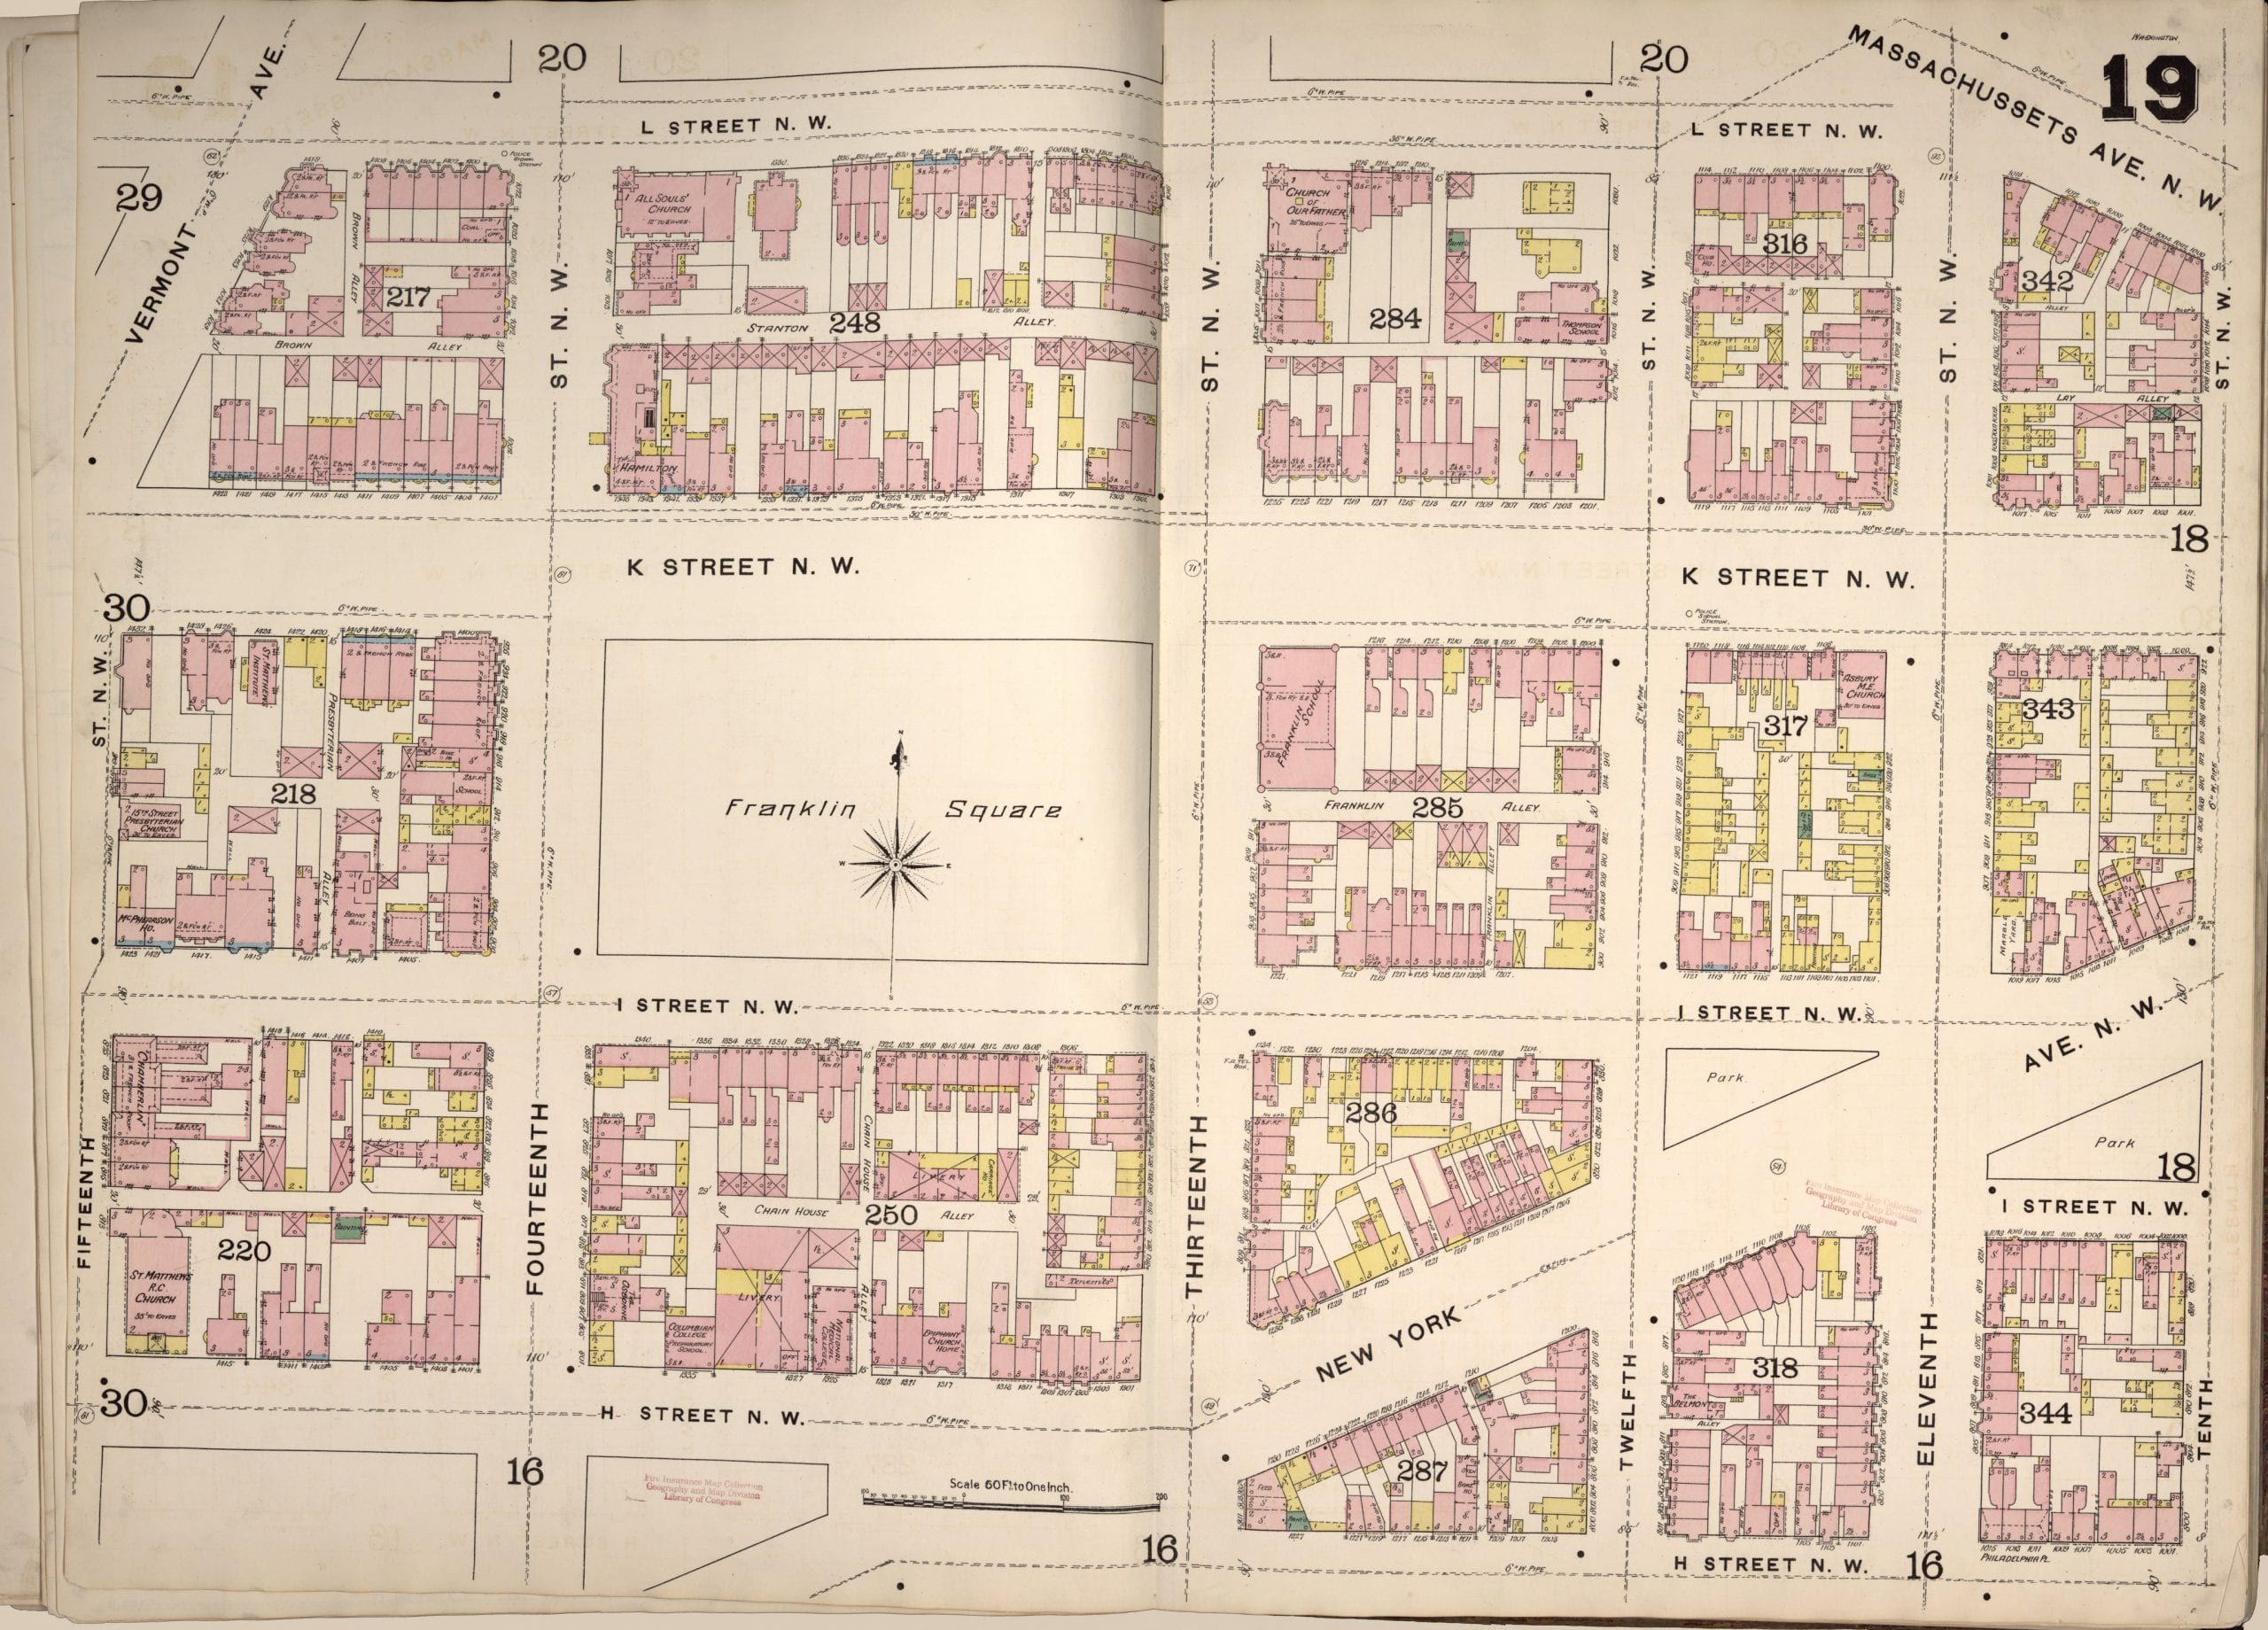 1888 map of Franklin Square